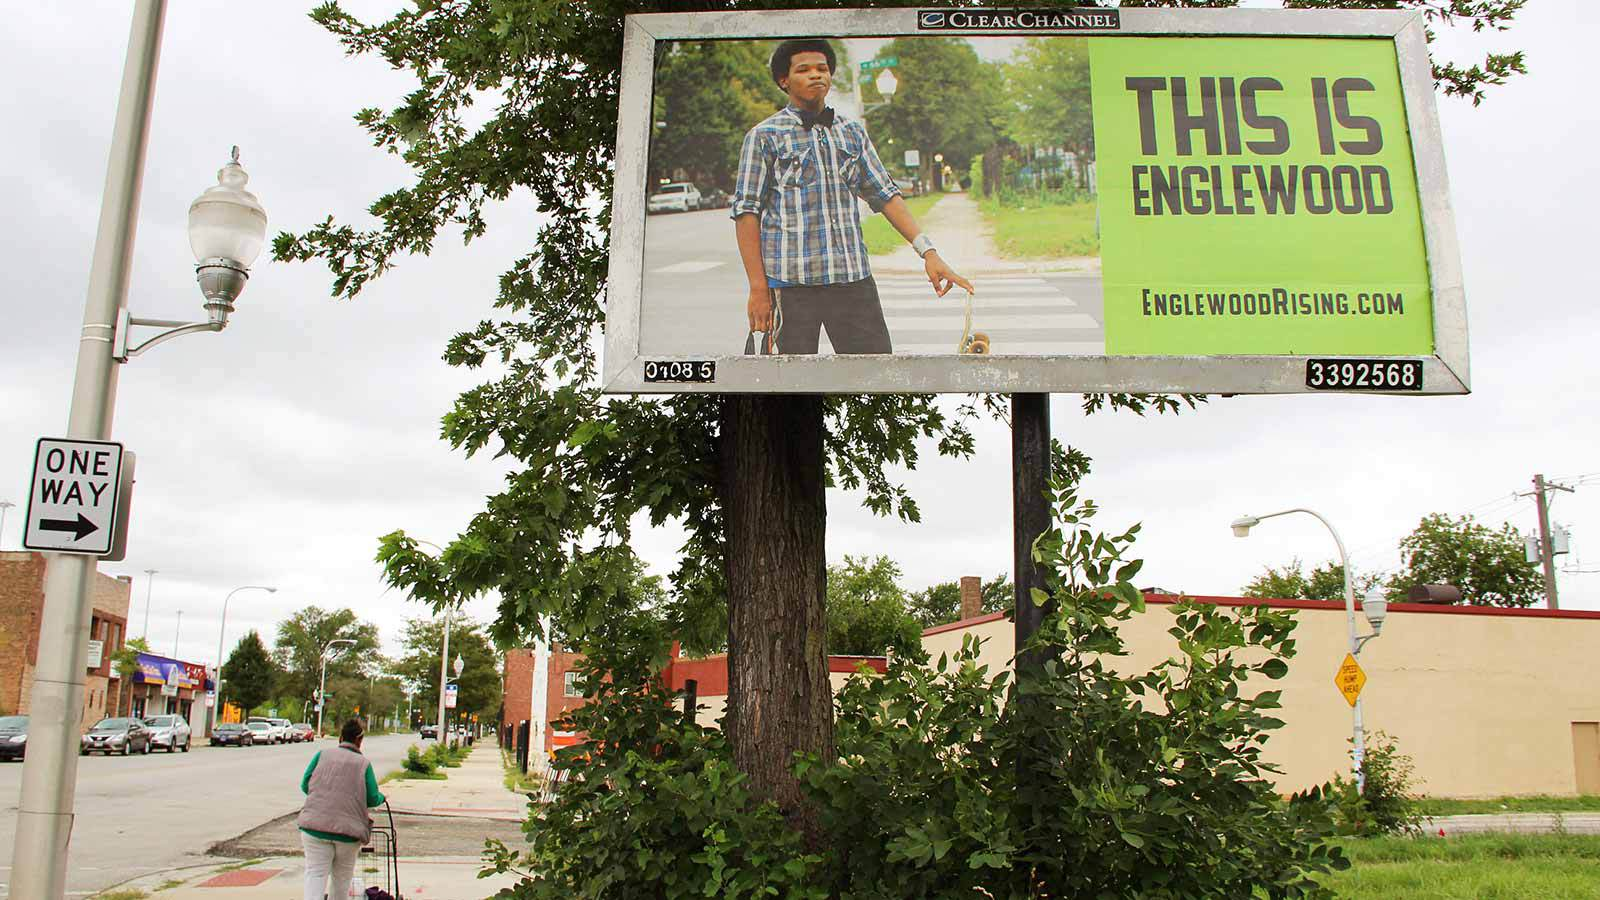 """Image: To the top right, a Englewood Rising billboard sits above a green bush. The billboard features a young Black man with a medium-sized afro, smiling. He is wearing a plaid shirt and a black bow-tie. In his left hand, he rests his index finger on his skateboard. He is holding a plastic bag in his right hand. Beside his image in black text against lime green background reads: """"This is Englewood."""" On the lower left, a person with a grocery cart walks underneath the billboard. Photo courtesy of the artist."""